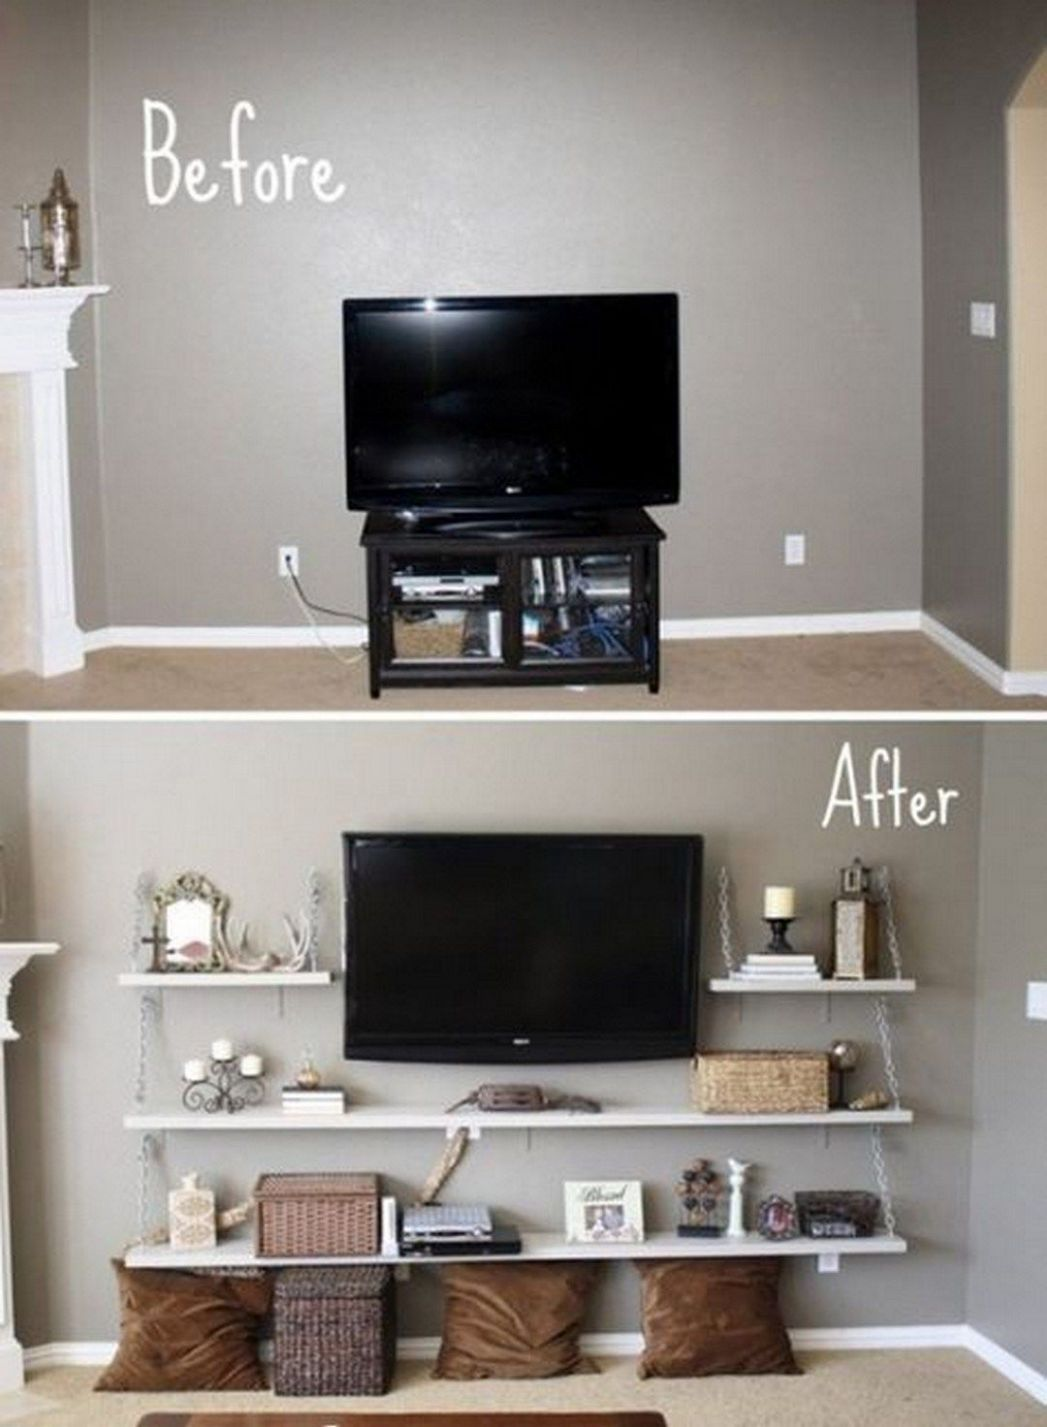 10 DIY Home Decor Ideas On A Budget You Must Try (10) | Home ..